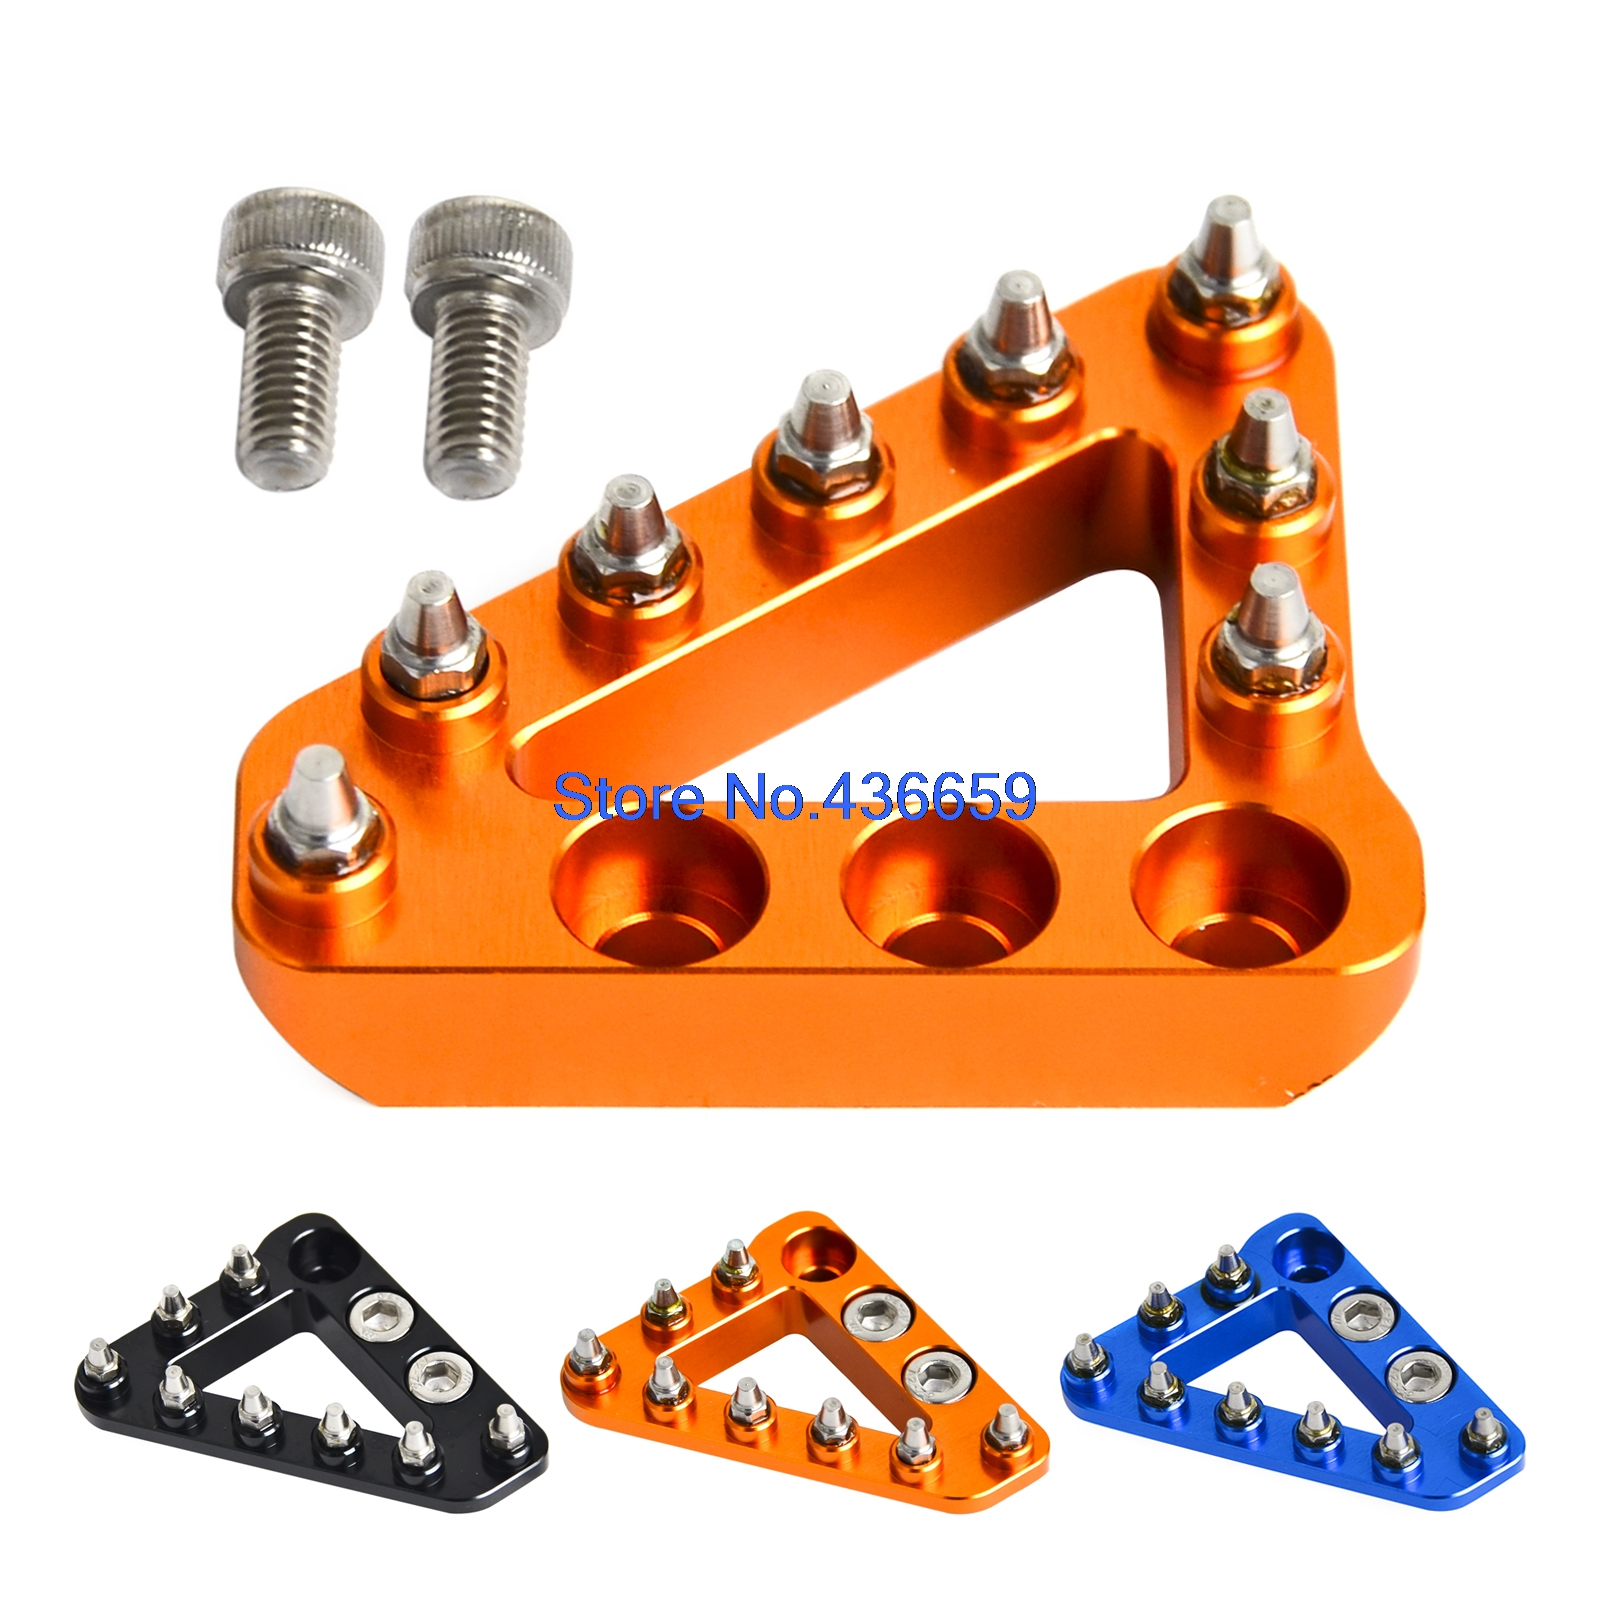 Hammerhead CNC Rear Brake Pedal Tip Large For KTM 68 85 125 150 200 250 300 350 450 525 530 SX XC XCF SXF EXC XCW SXS SMR SXS cnc stunt clutch lever easy pull cable system for ktm exc excf xc xcf xcw xcfw mx egs sx sxf sxs smr 50 65 85 125 150 200 250